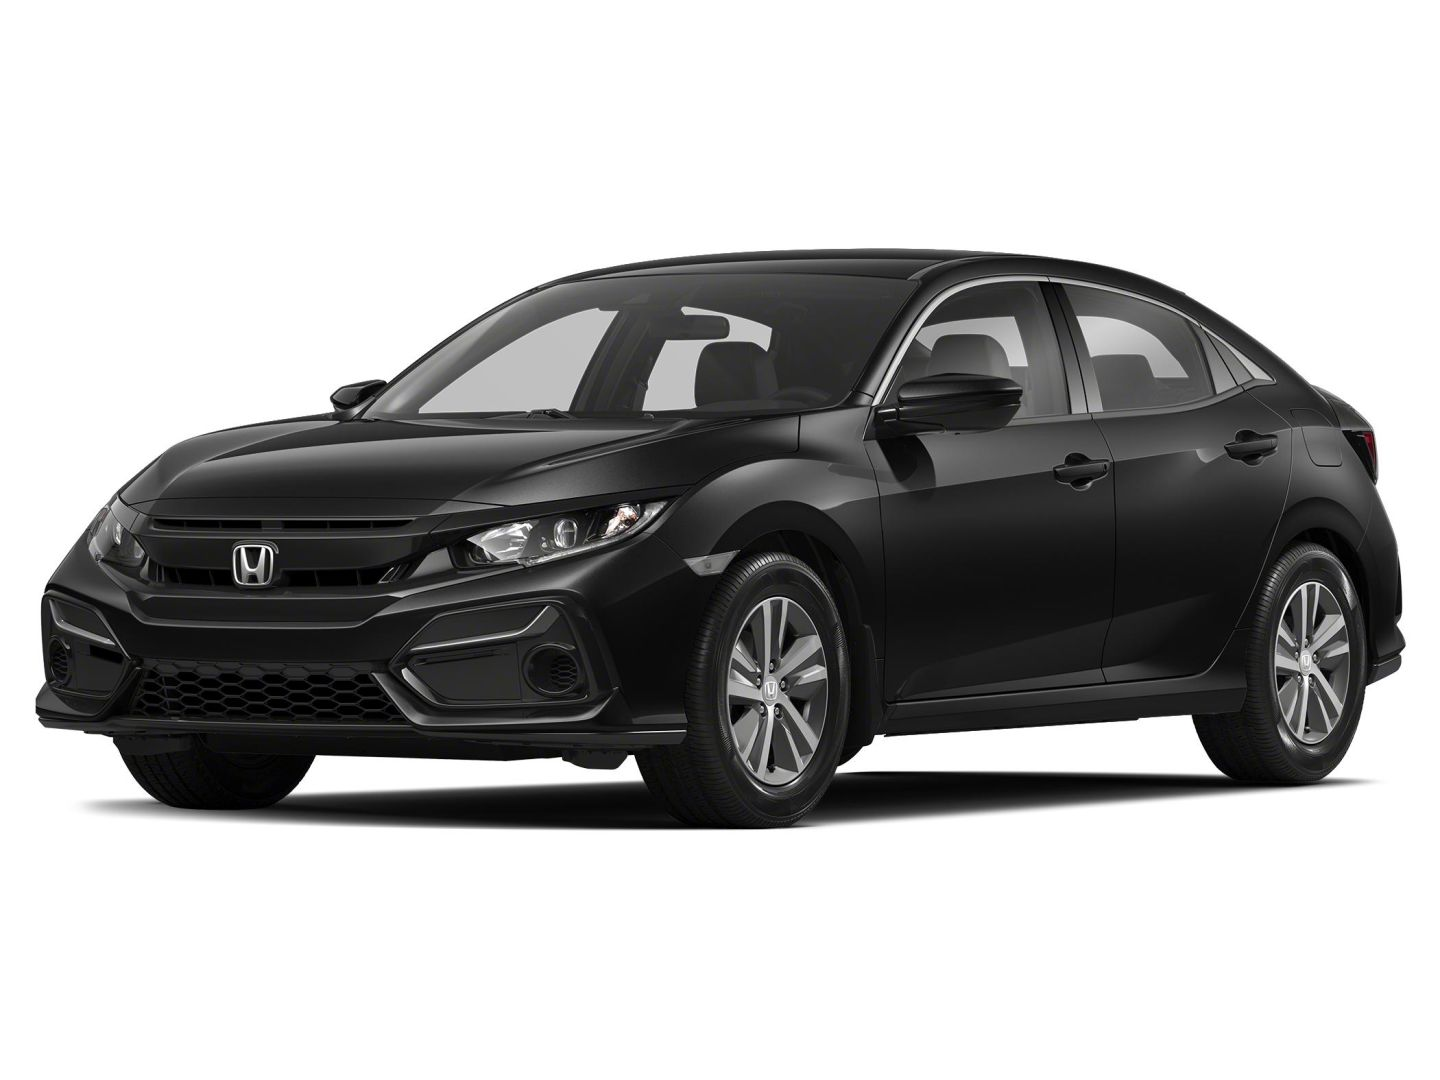 2020 Honda Civic Hatchback LX for sale in Edmonton, Alberta